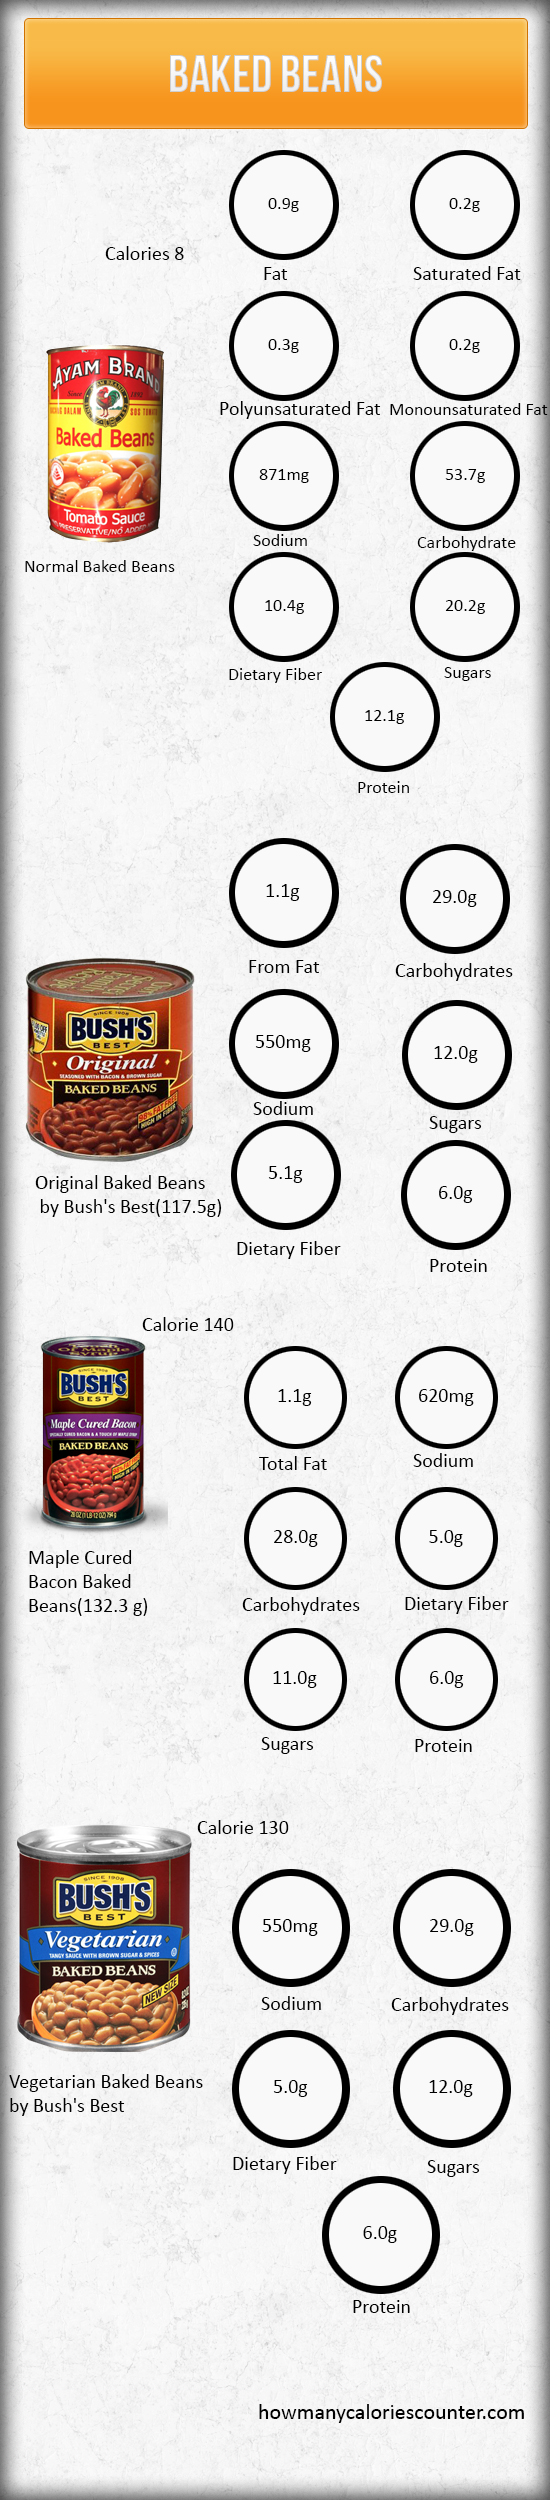 Calories in a Baked Beans